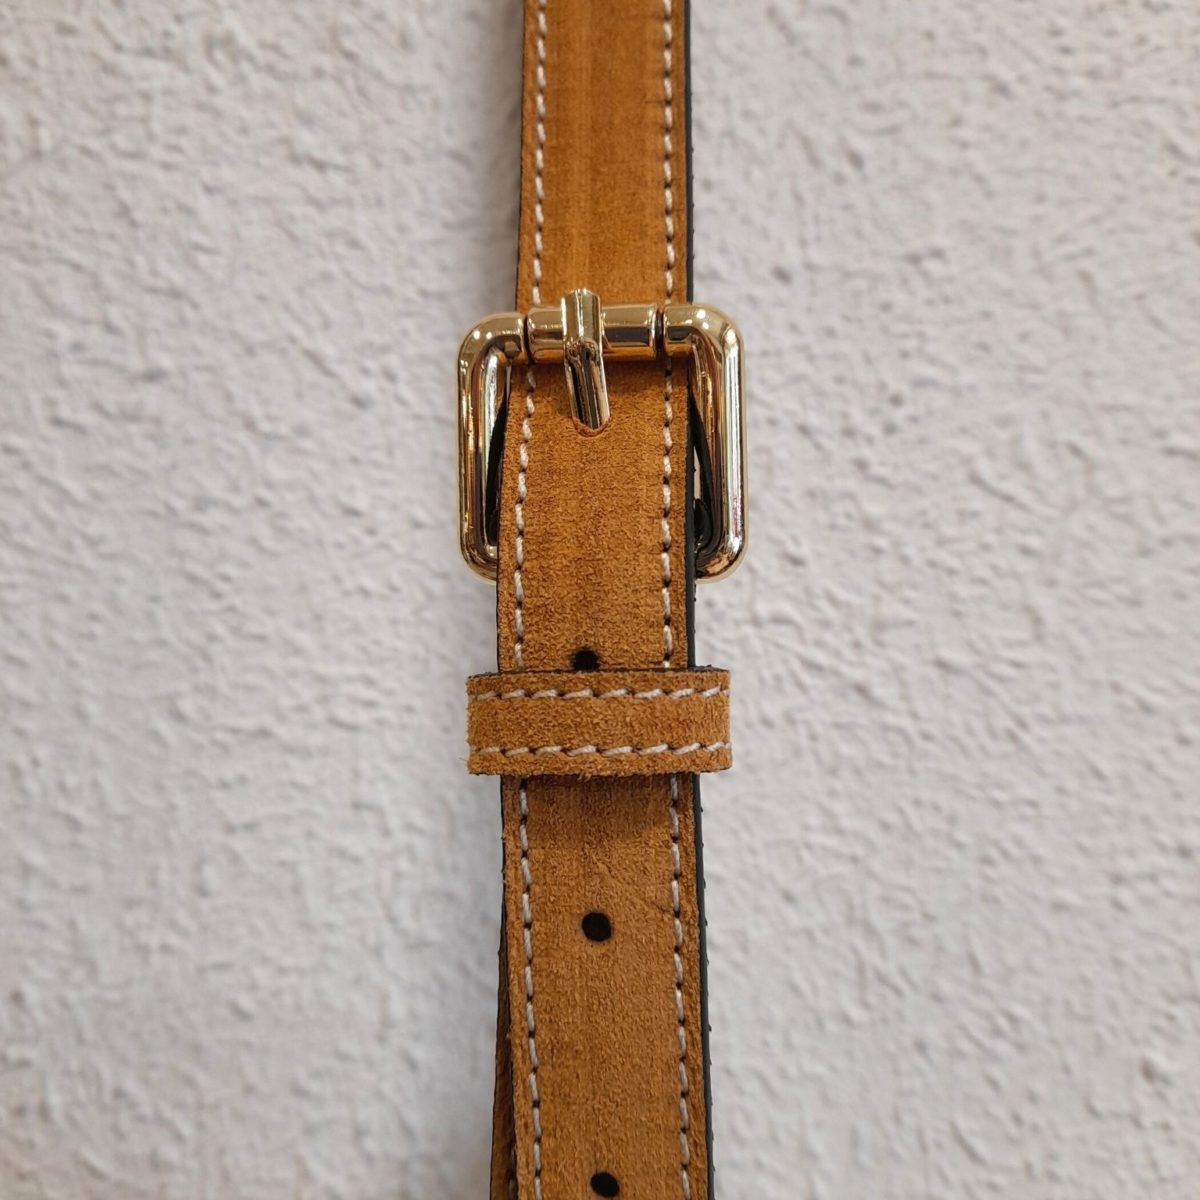 Narrow Mustard-colored Leather Belt